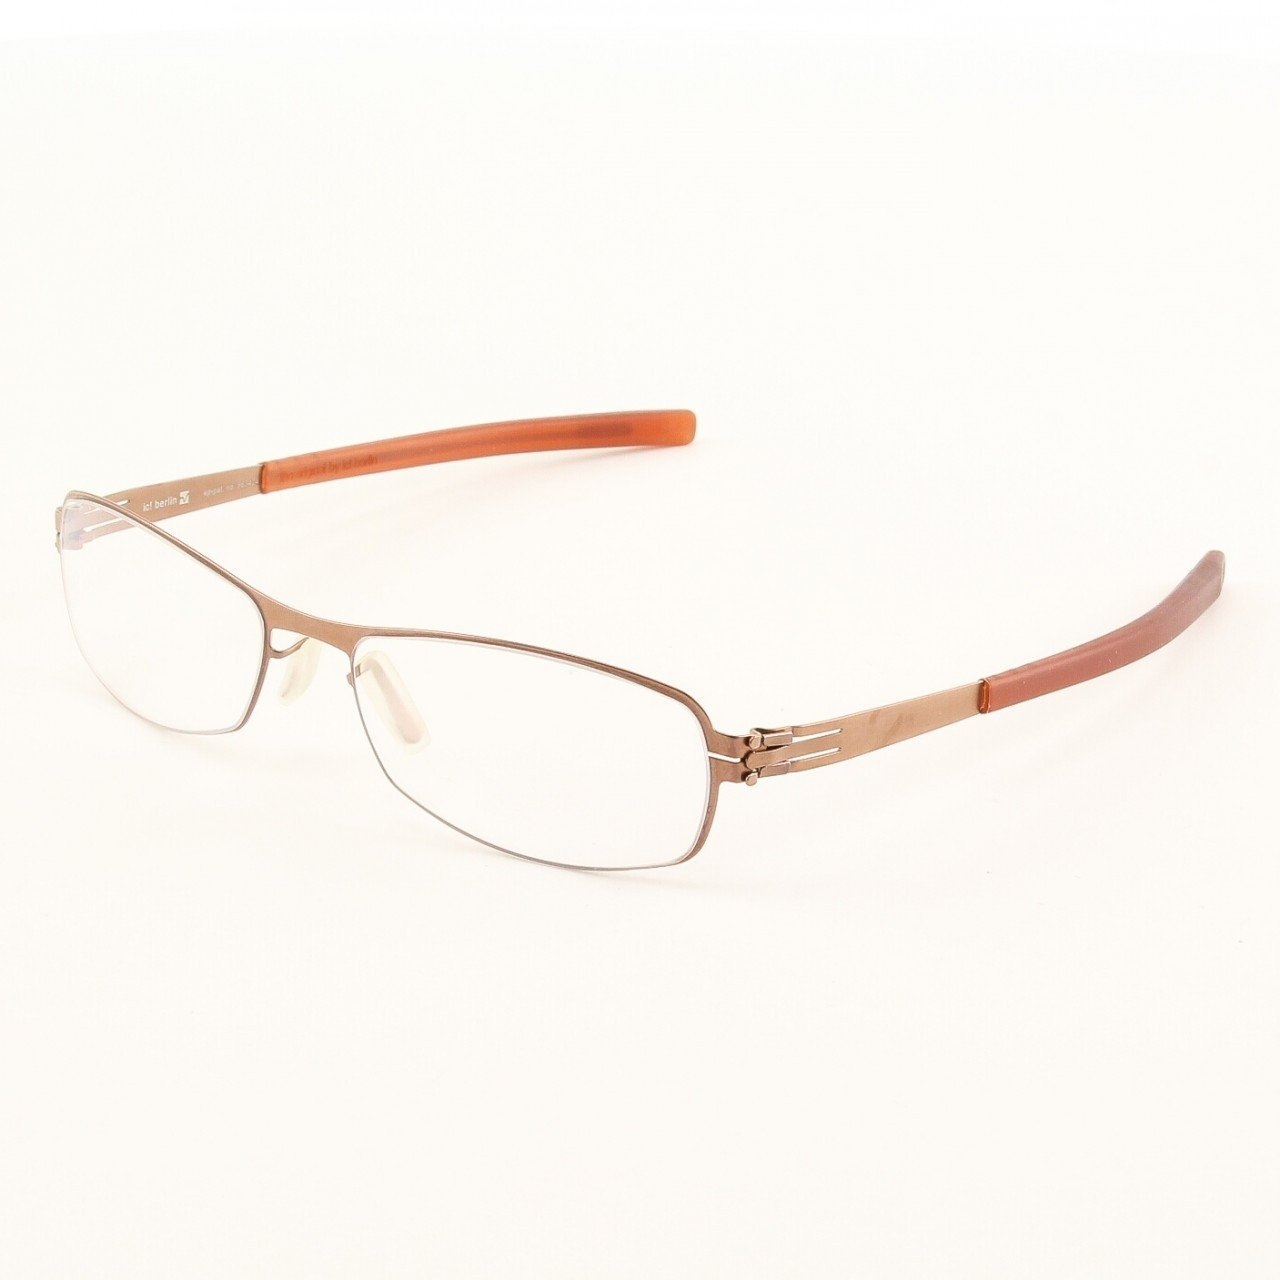 ic! Berlin Rose Eyeglasses Col. Copper with Clear Lenses